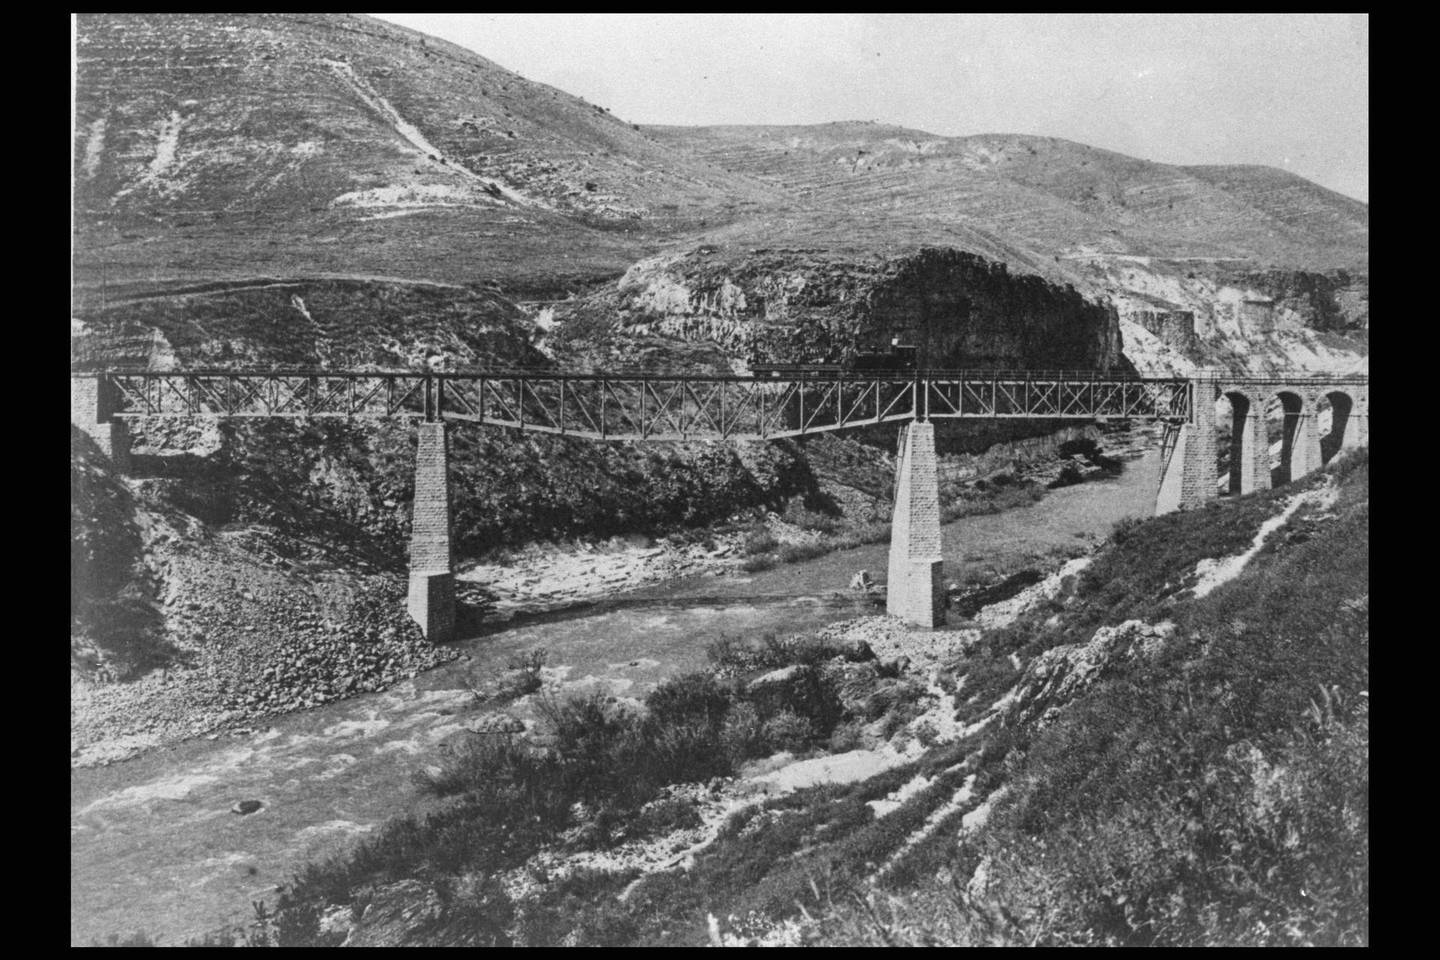 The first and largest Yarmouk Valley Bridge, over the Yarmuk Valley on the Hejaz Railway, Syria, circa 1917. During the Arab Revolt against Ottoman rule, Colonel T E Lawrence tried to destroy this bridge during his first ride through Syria in June 1917. (Photo by Pierre Perrin/Sygma via Getty Images)